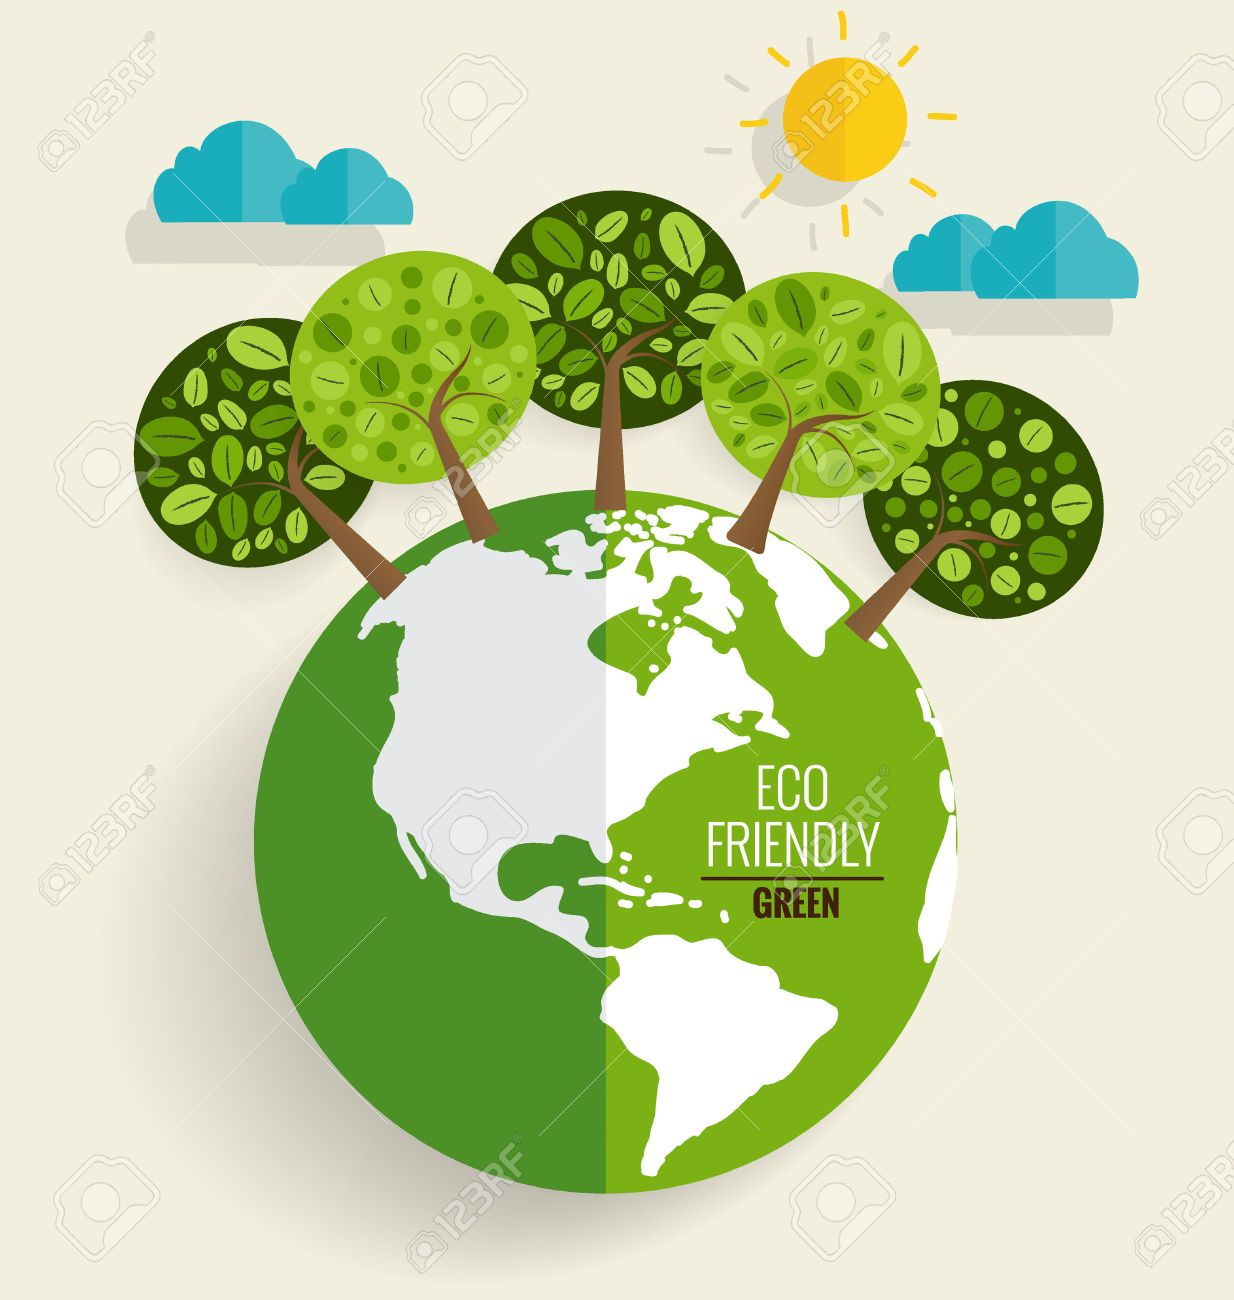 ECO FRIENDLY. Ecology concept with Green Eco Earth and Trees. Vector illustration. - 44305962